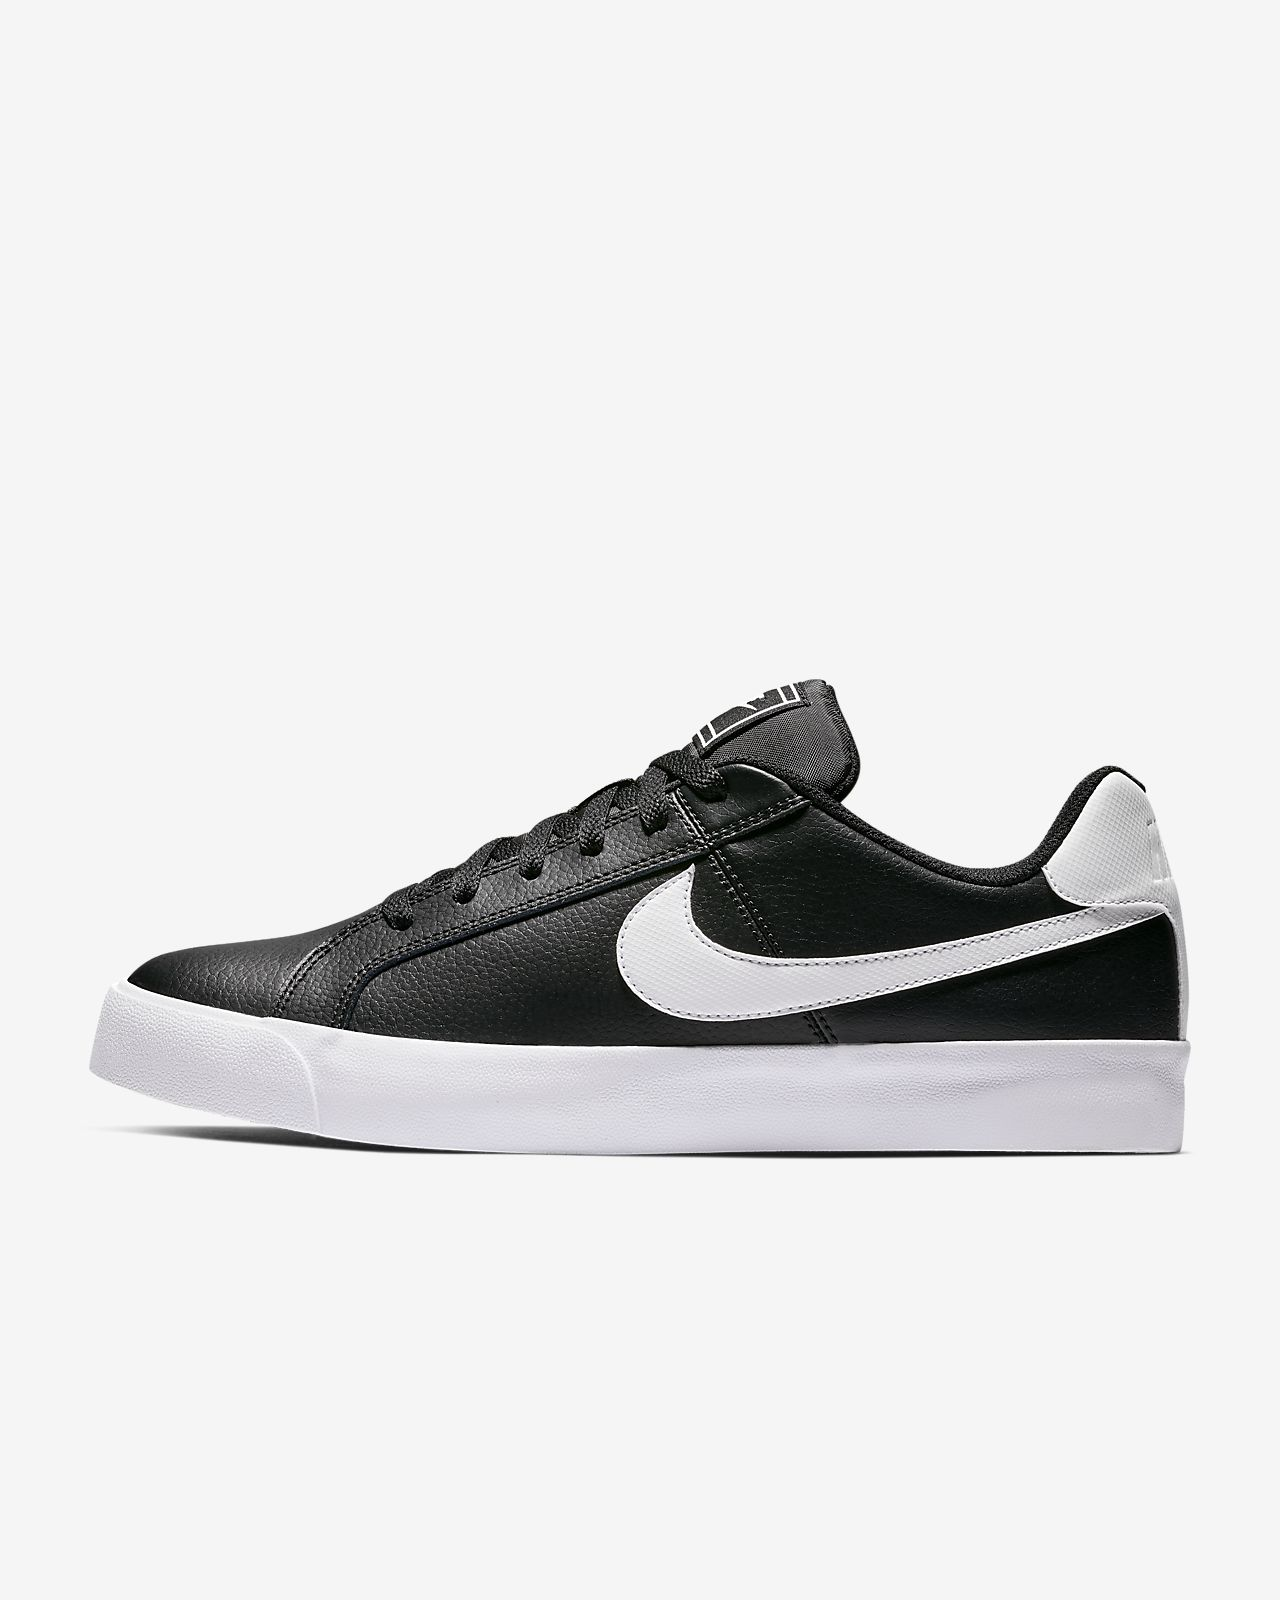 NikeCourt Royale AC Men's Shoe